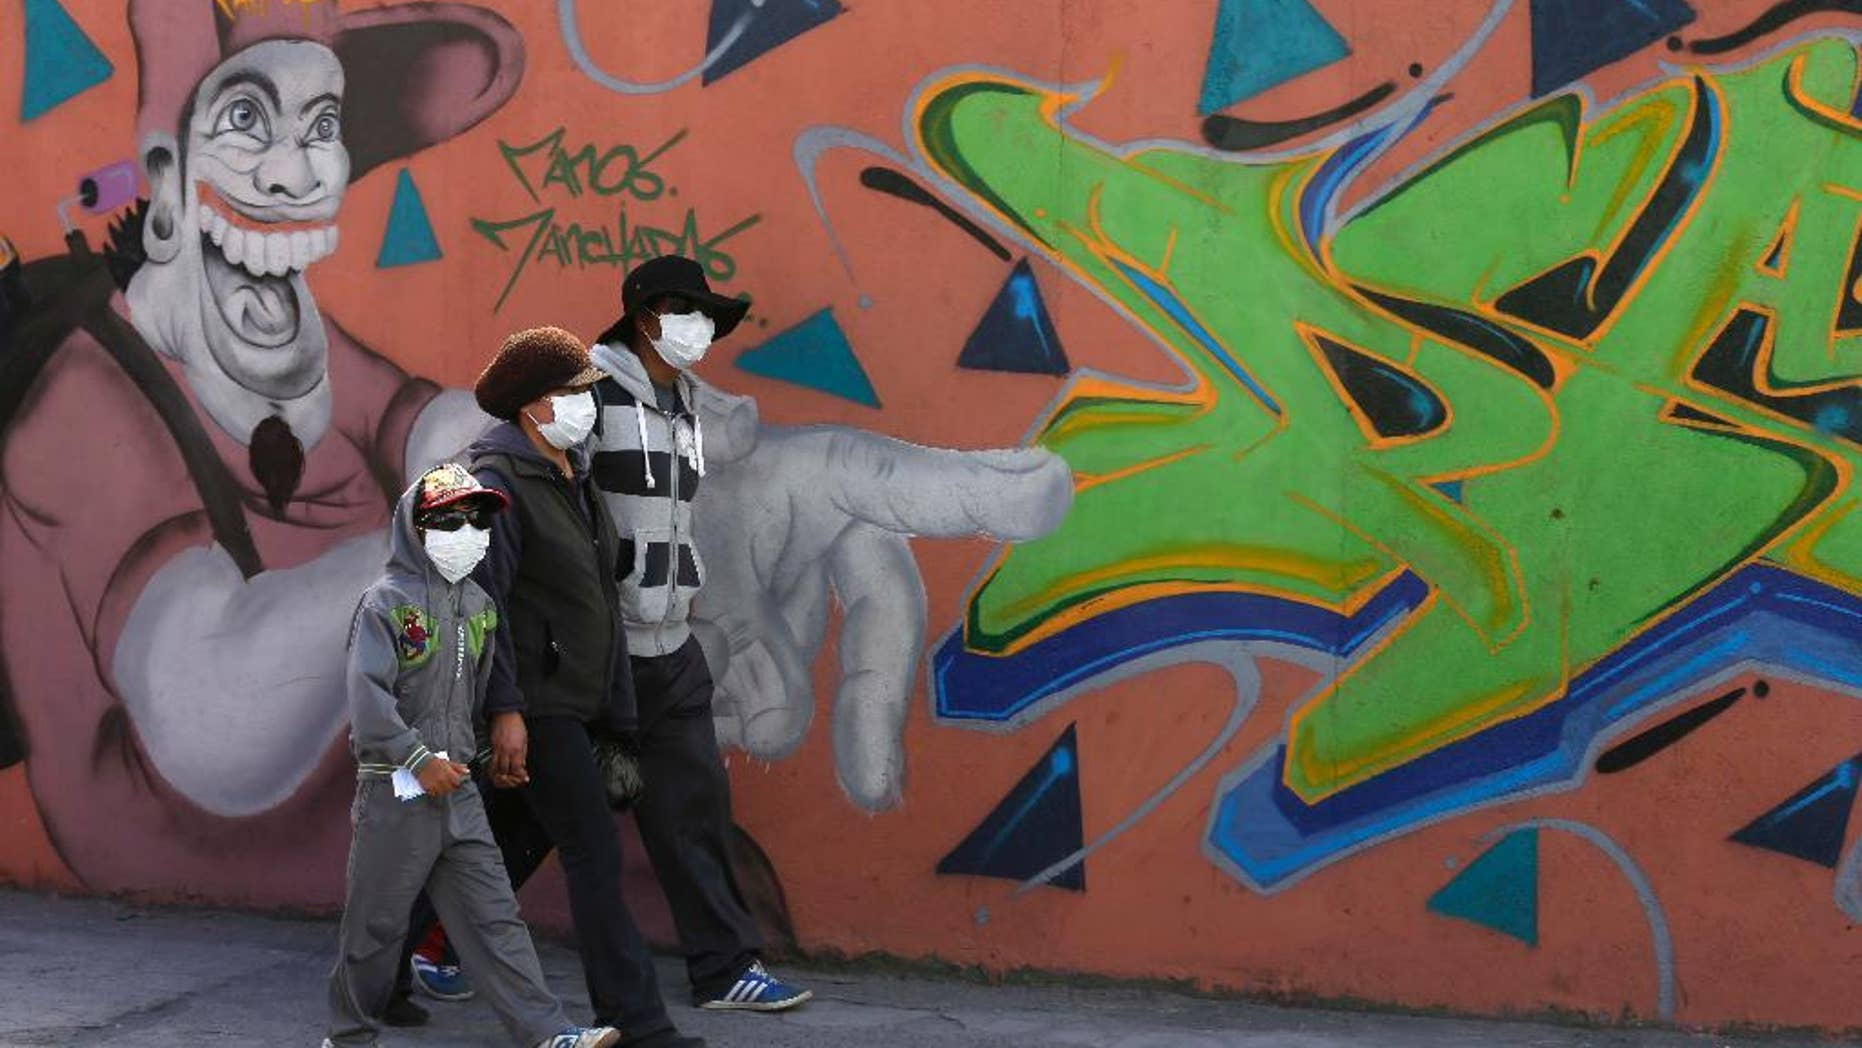 Residents wear masks to protect themselves from volcanic ash spewed from the Cotopaxi volcano, in Machachi, Ecuador, Friday, Aug. 14, 2015. The Cotopaxi volcano near Ecuador's capital has spewed ash over a wide area in two pre-dawn blasts. The volcano is considered one of the world's most dangerous volcanoes due to a glacial cover that makes it prone to mud flows and its proximity to a heavily populated area, but government scientists say that the snow-capped volcano doesn't seem to be on the verge of a major eruption. Its last major eruption was in 1877. (AP Photo/Dolores Ochoa)